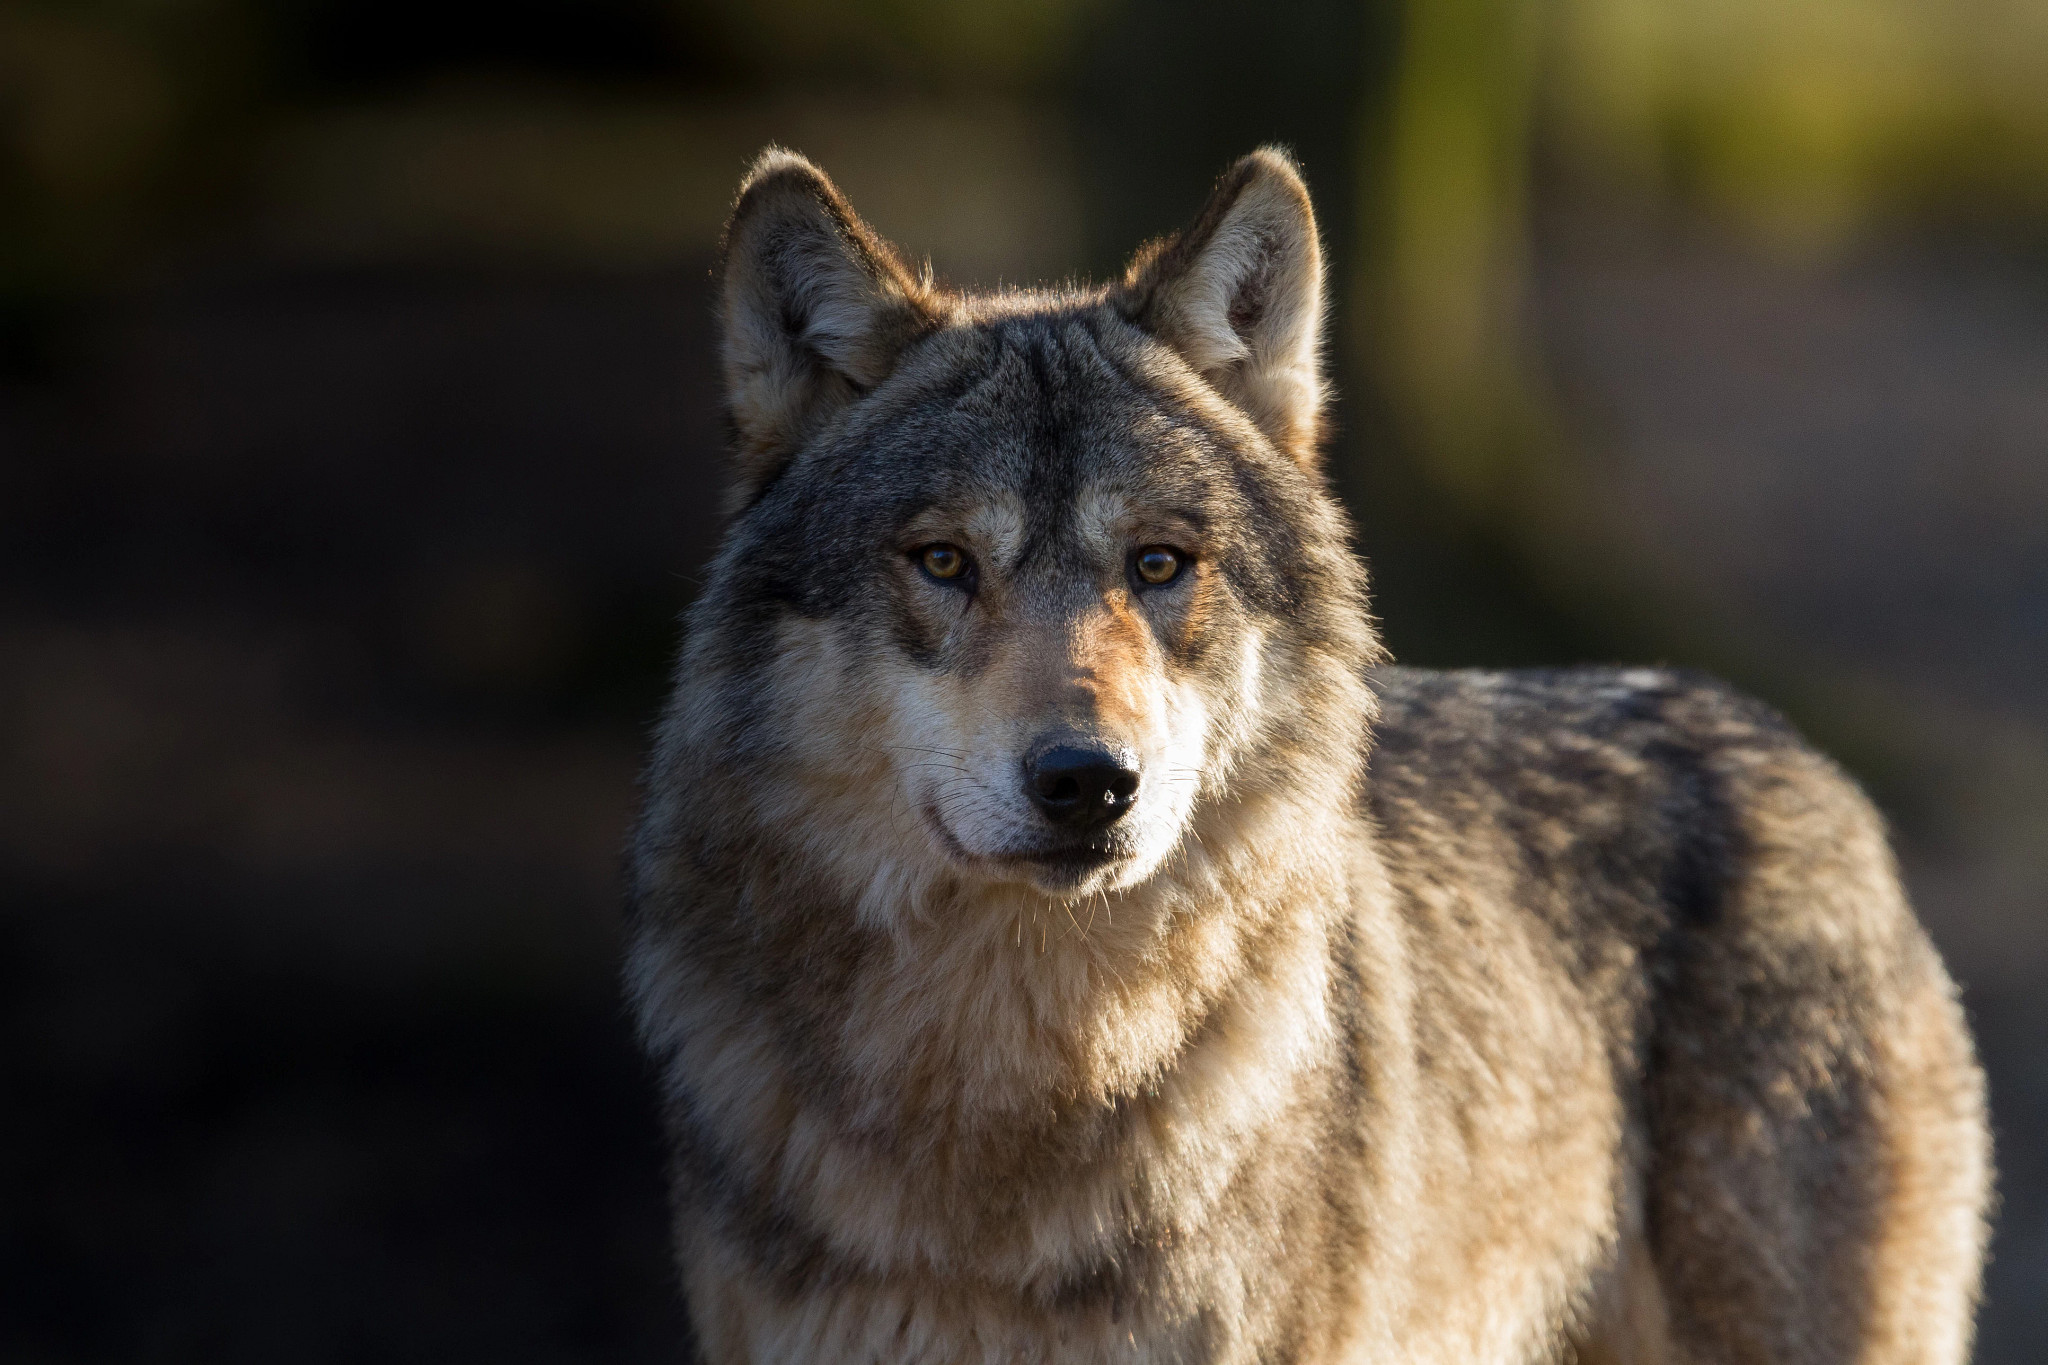 A gray wolf stares at the camera.